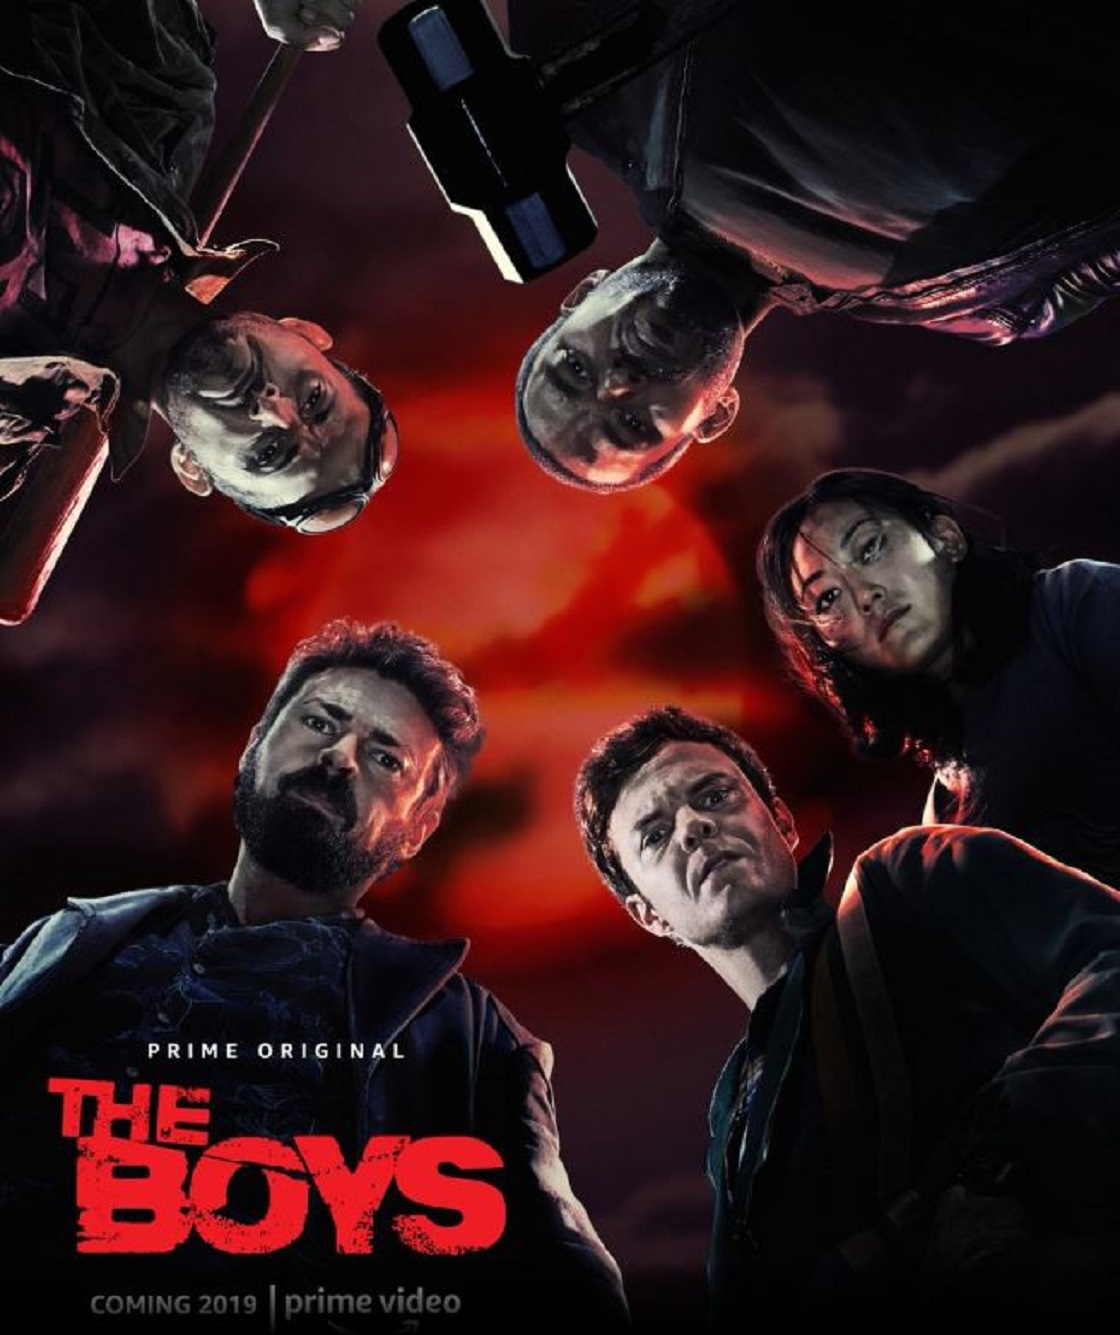 The Boys - Nueva serie de Amazon